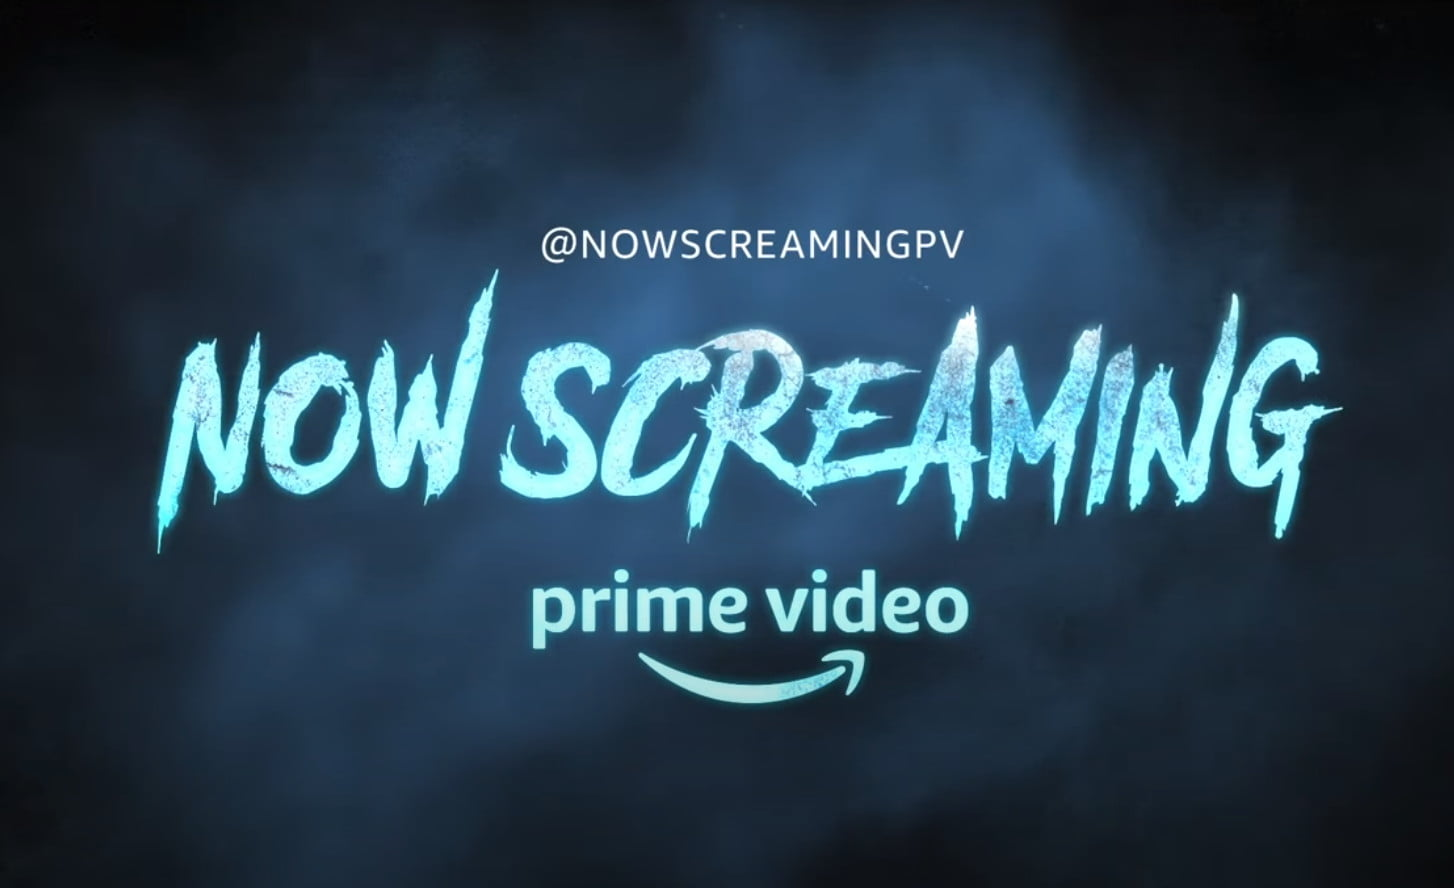 Prime Video's Now Screaming